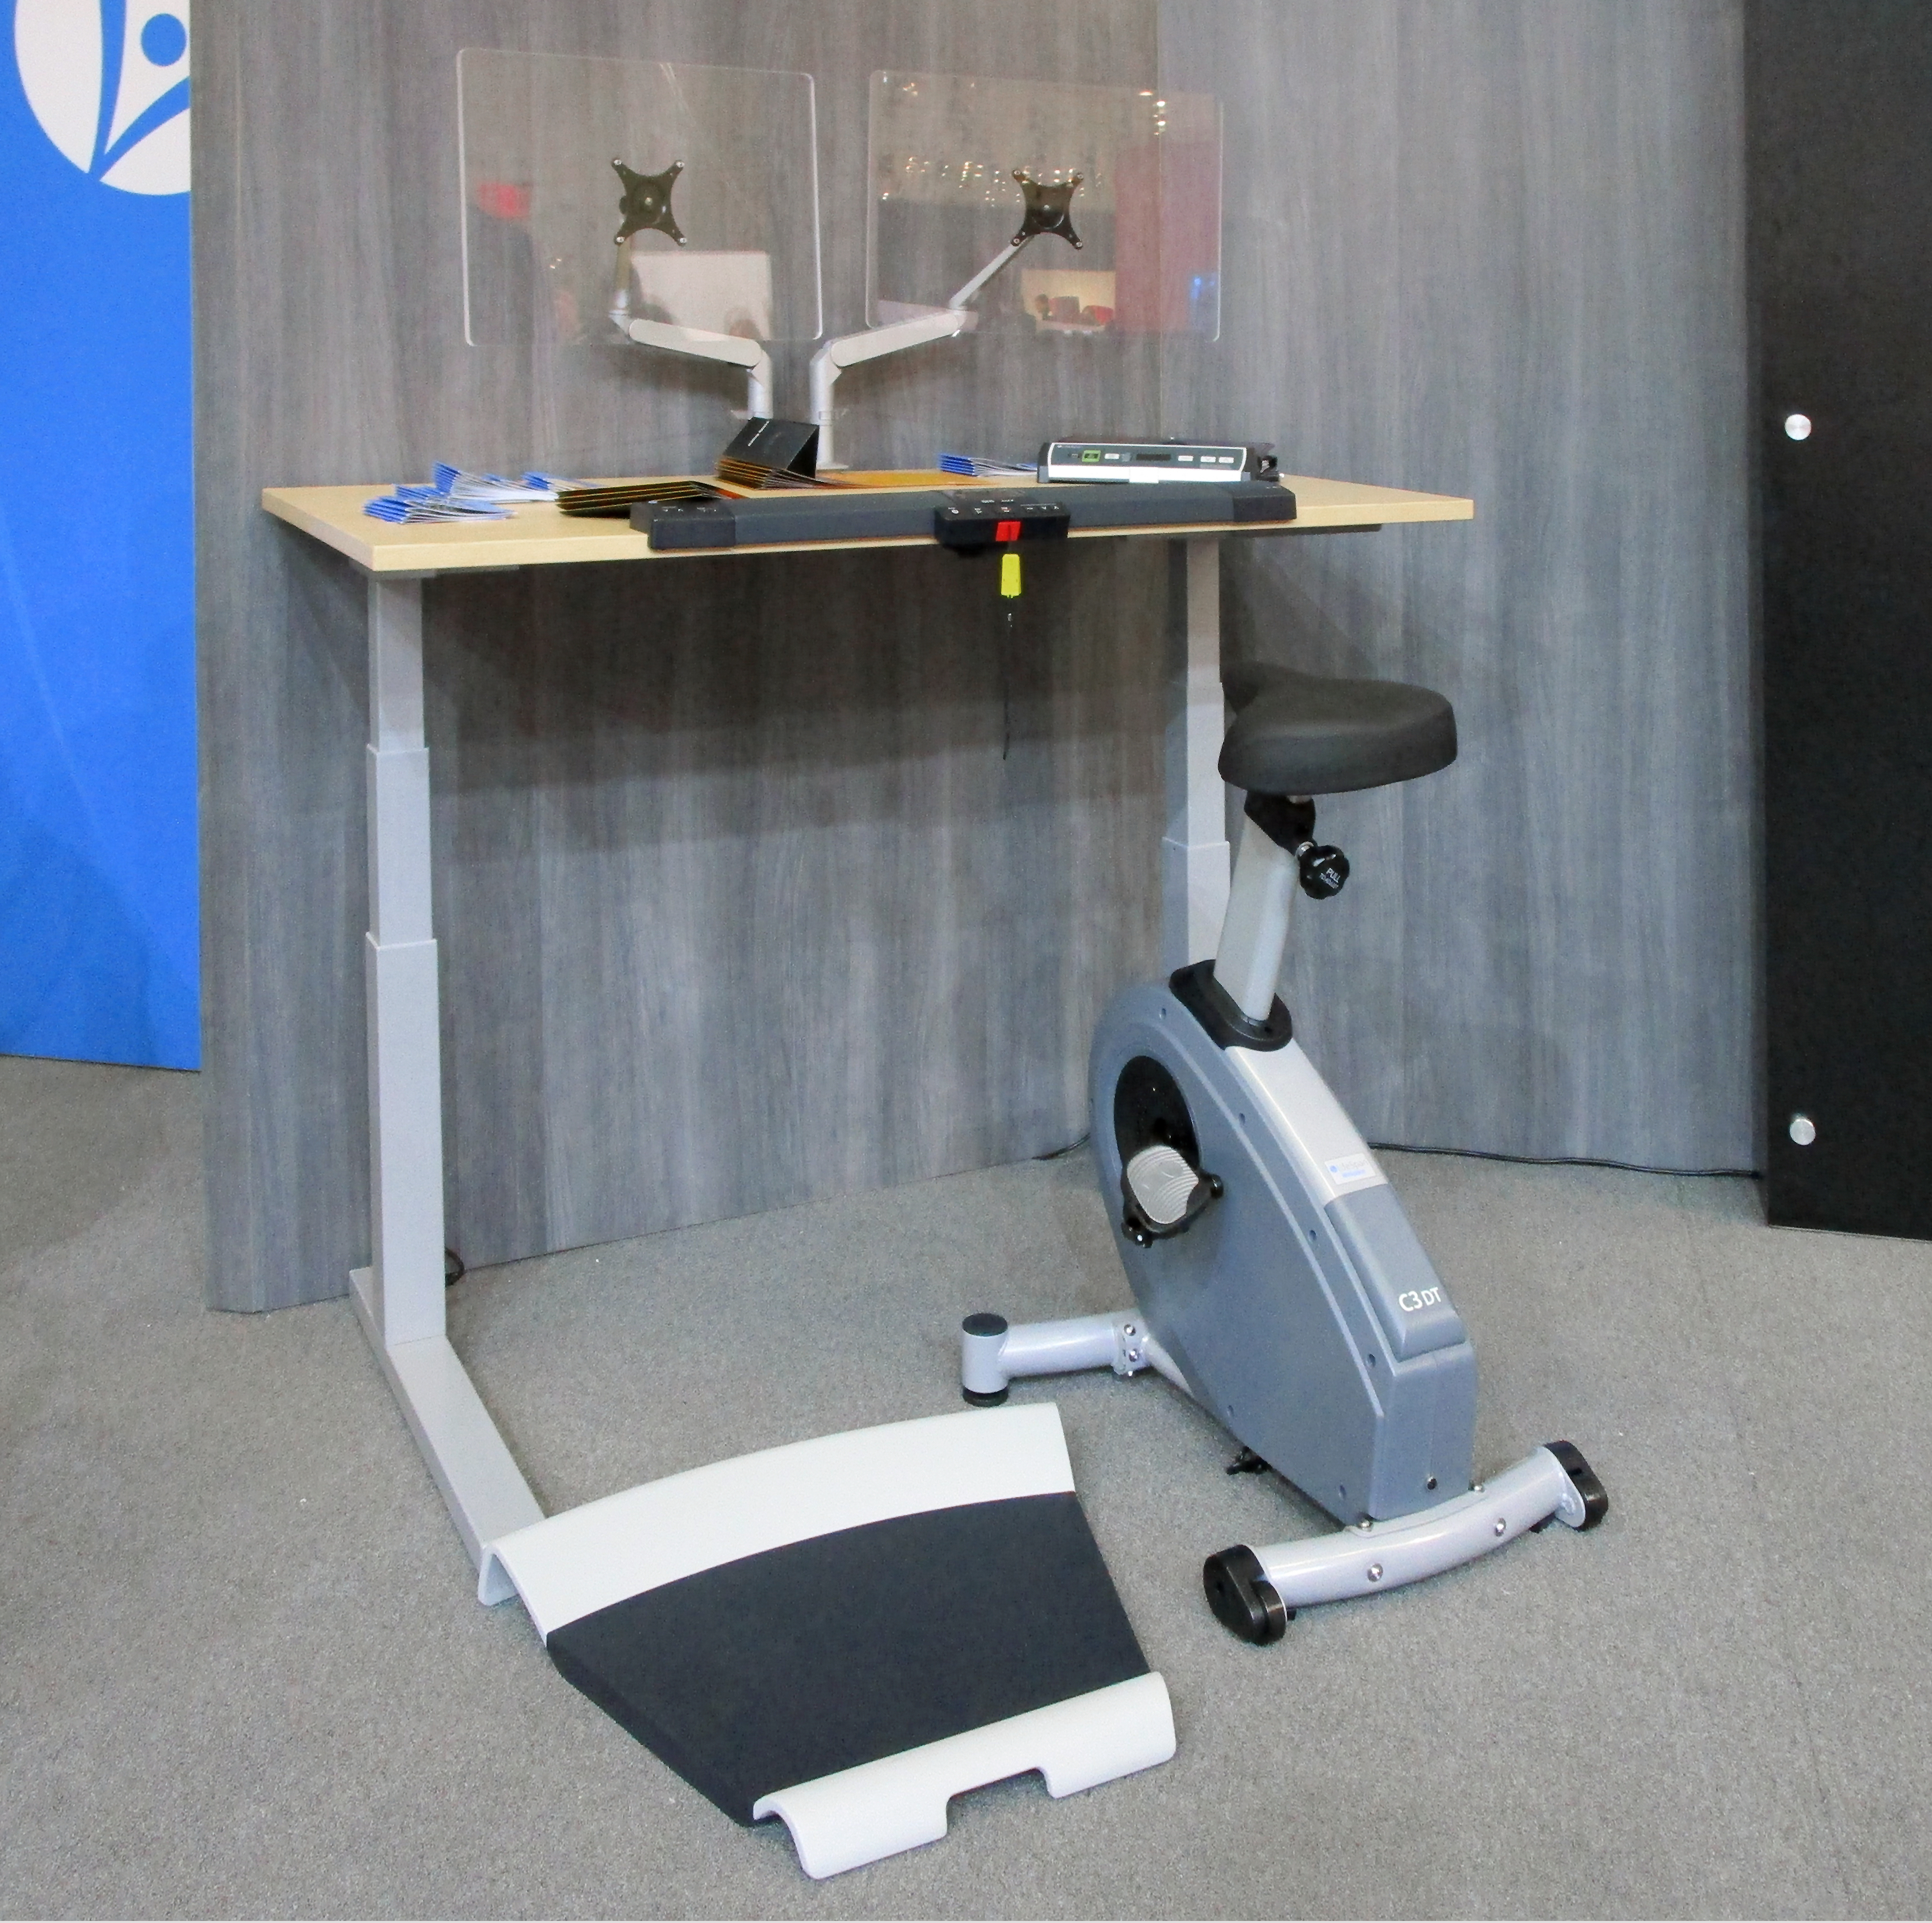 of space chairs bike benefits stability exercise exciting desk full office pics appealing reviews bicycle ball chair size